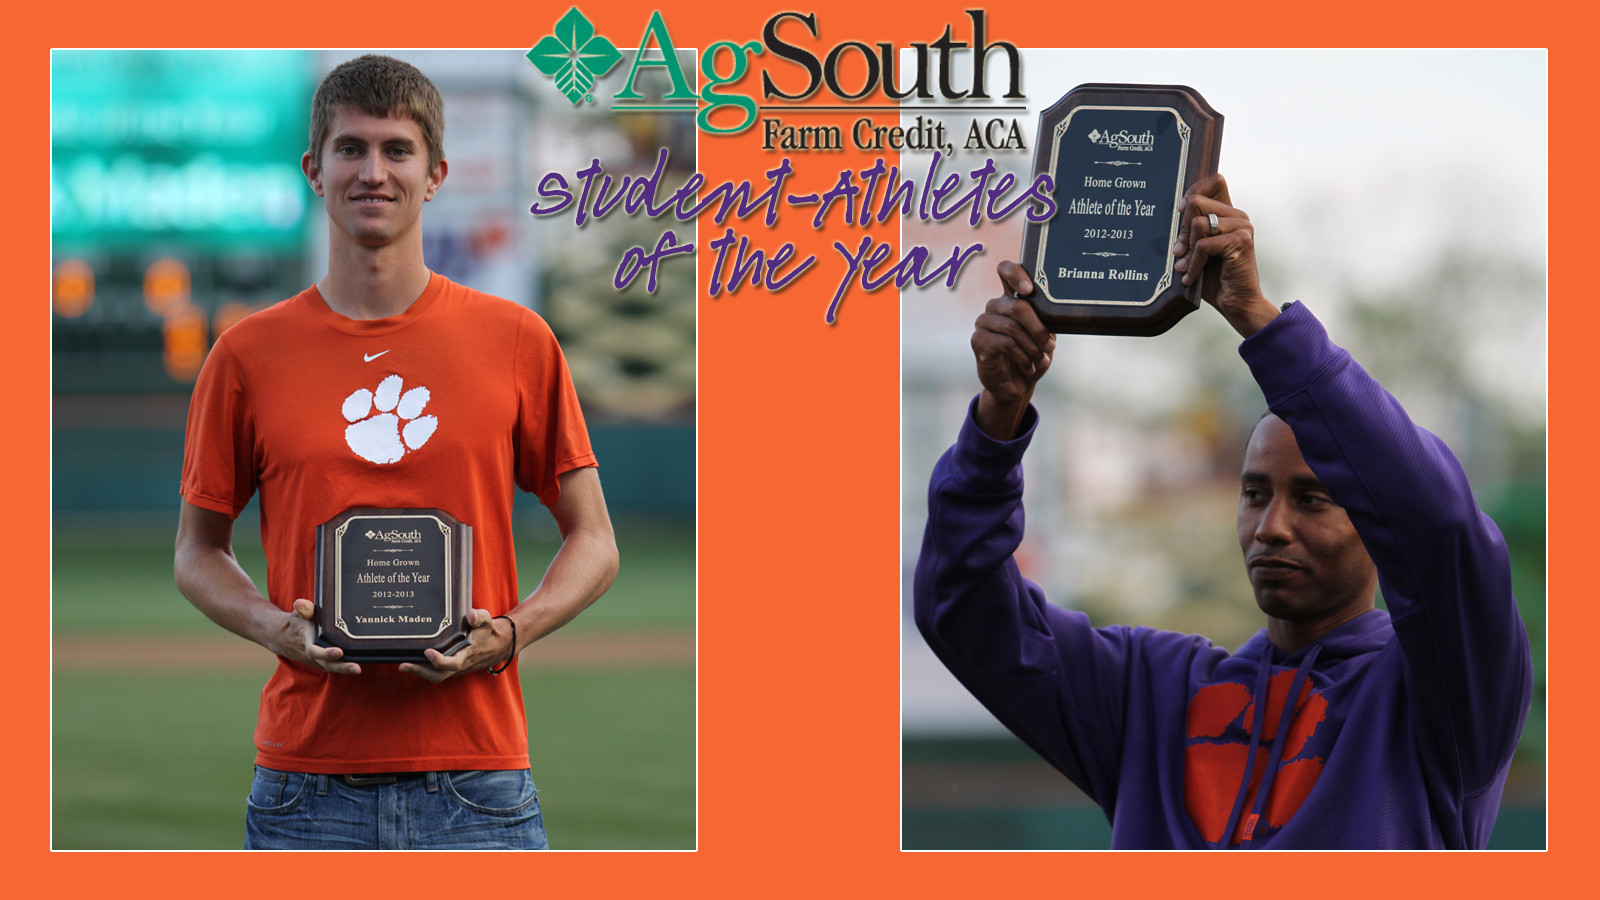 AgSouth Homegrown Athletes of the Year – Maden & Rollins